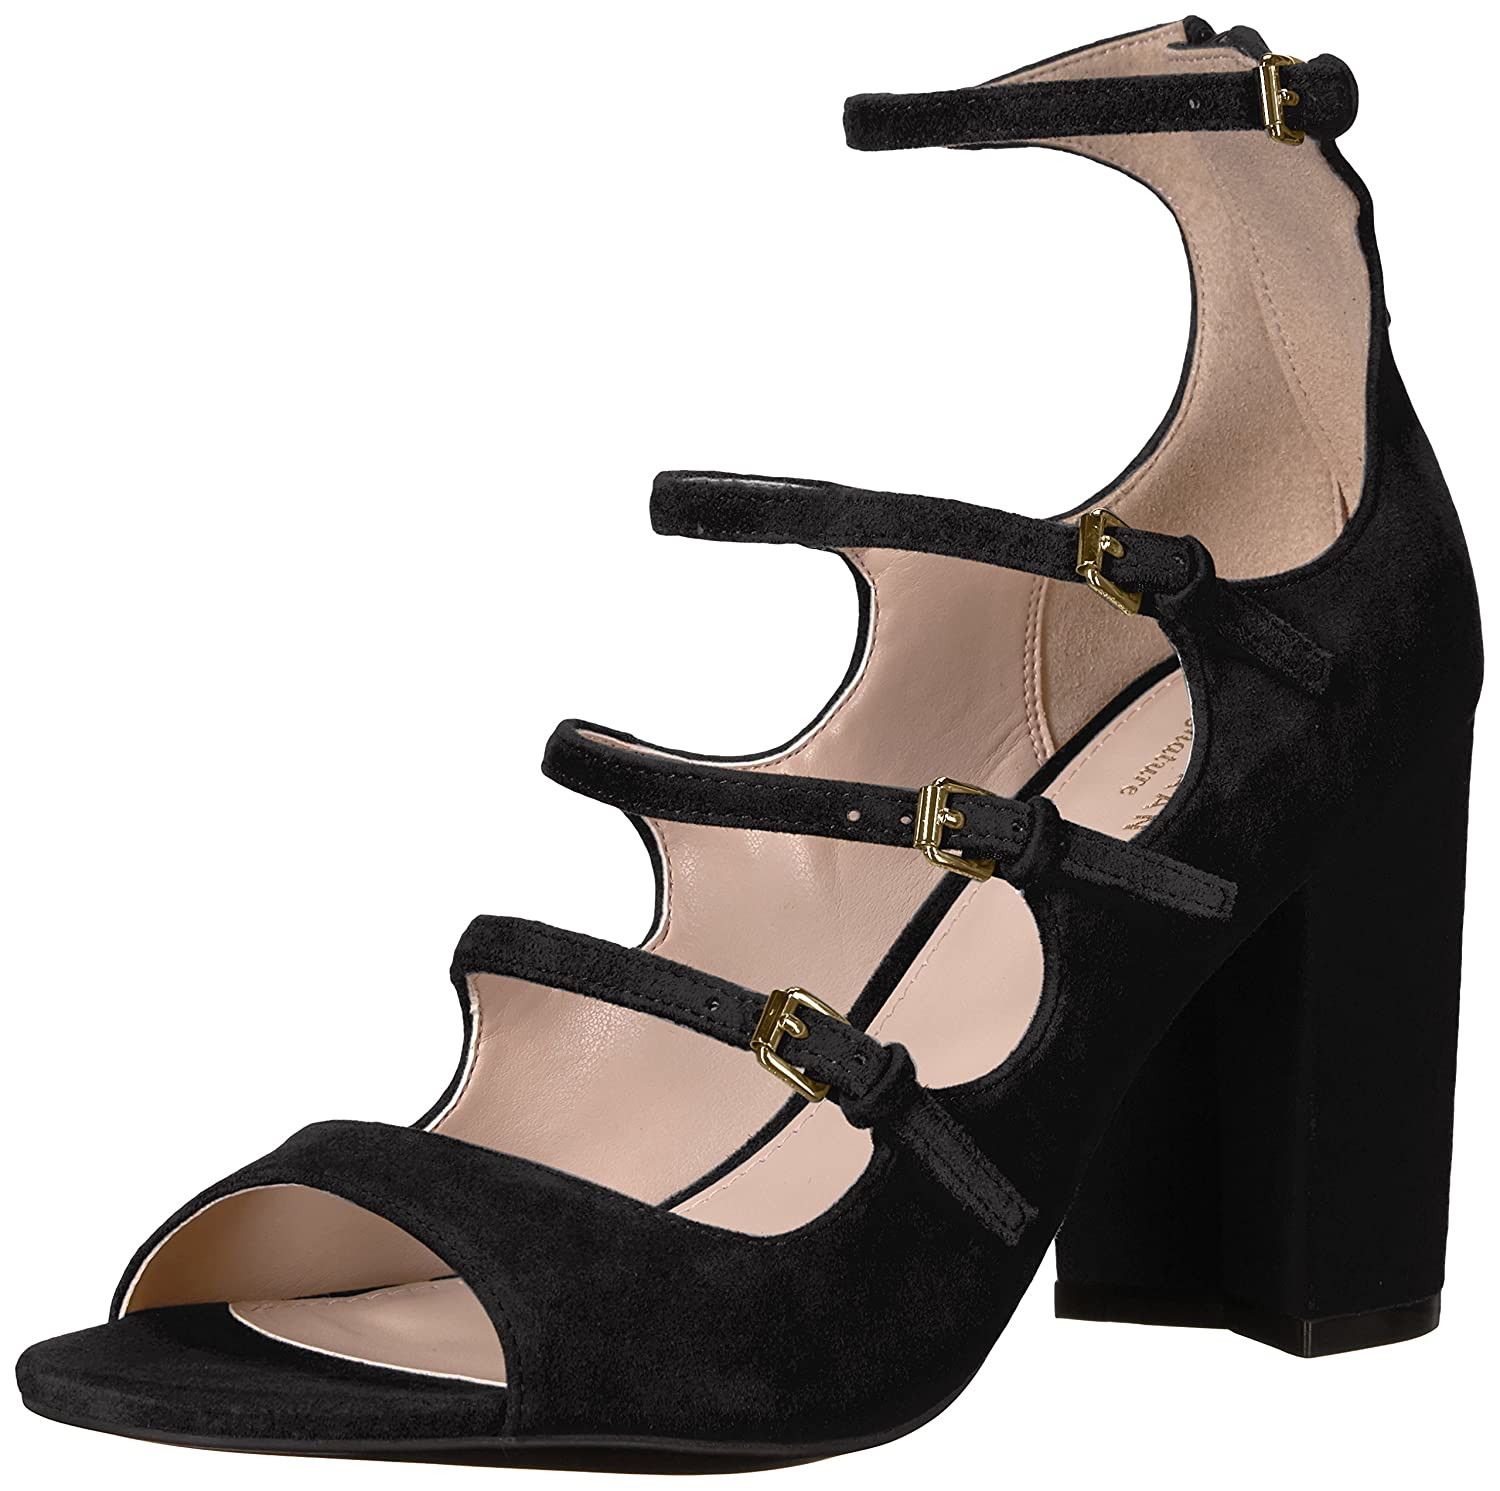 Cole Haan Women's Cielo High B(M) Dress Sandal B01N700CI0 7.5 B(M) High US|Black e27251